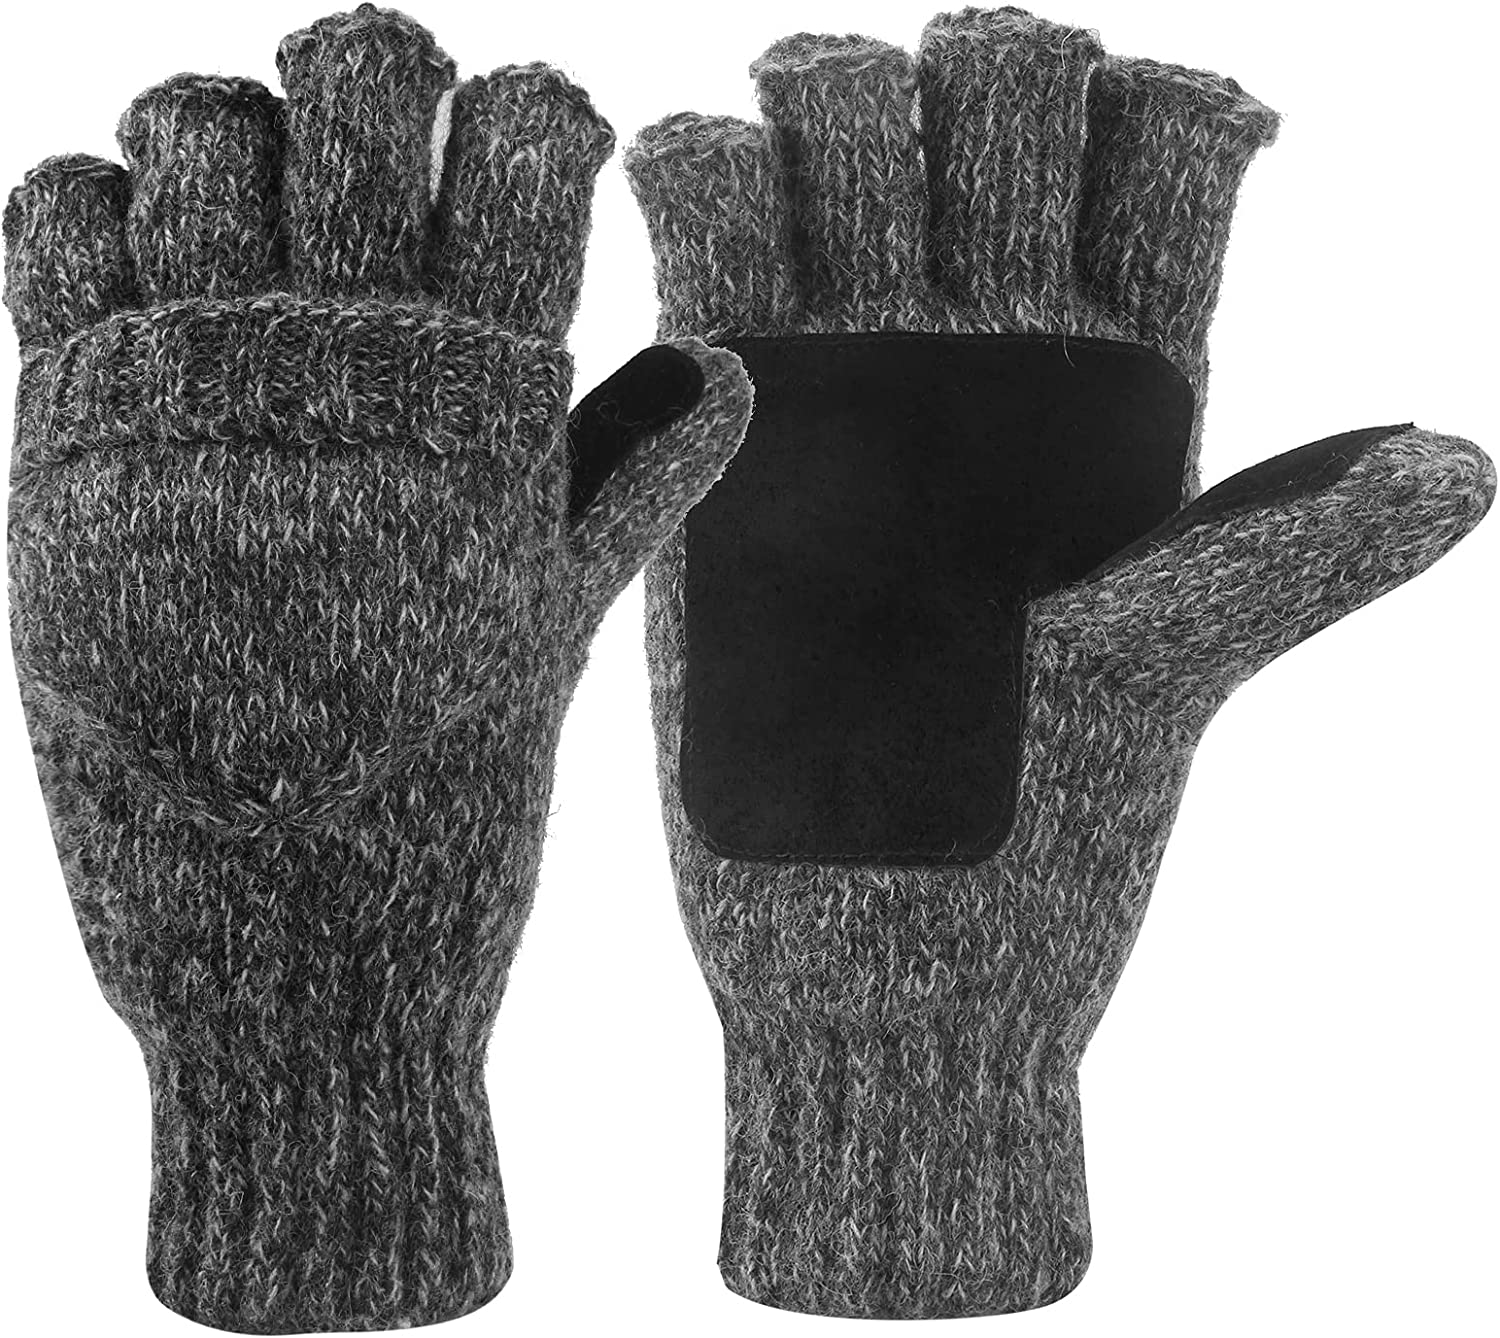 Metog Suede Thinsulate Thermal Insulation Mittens Gloves